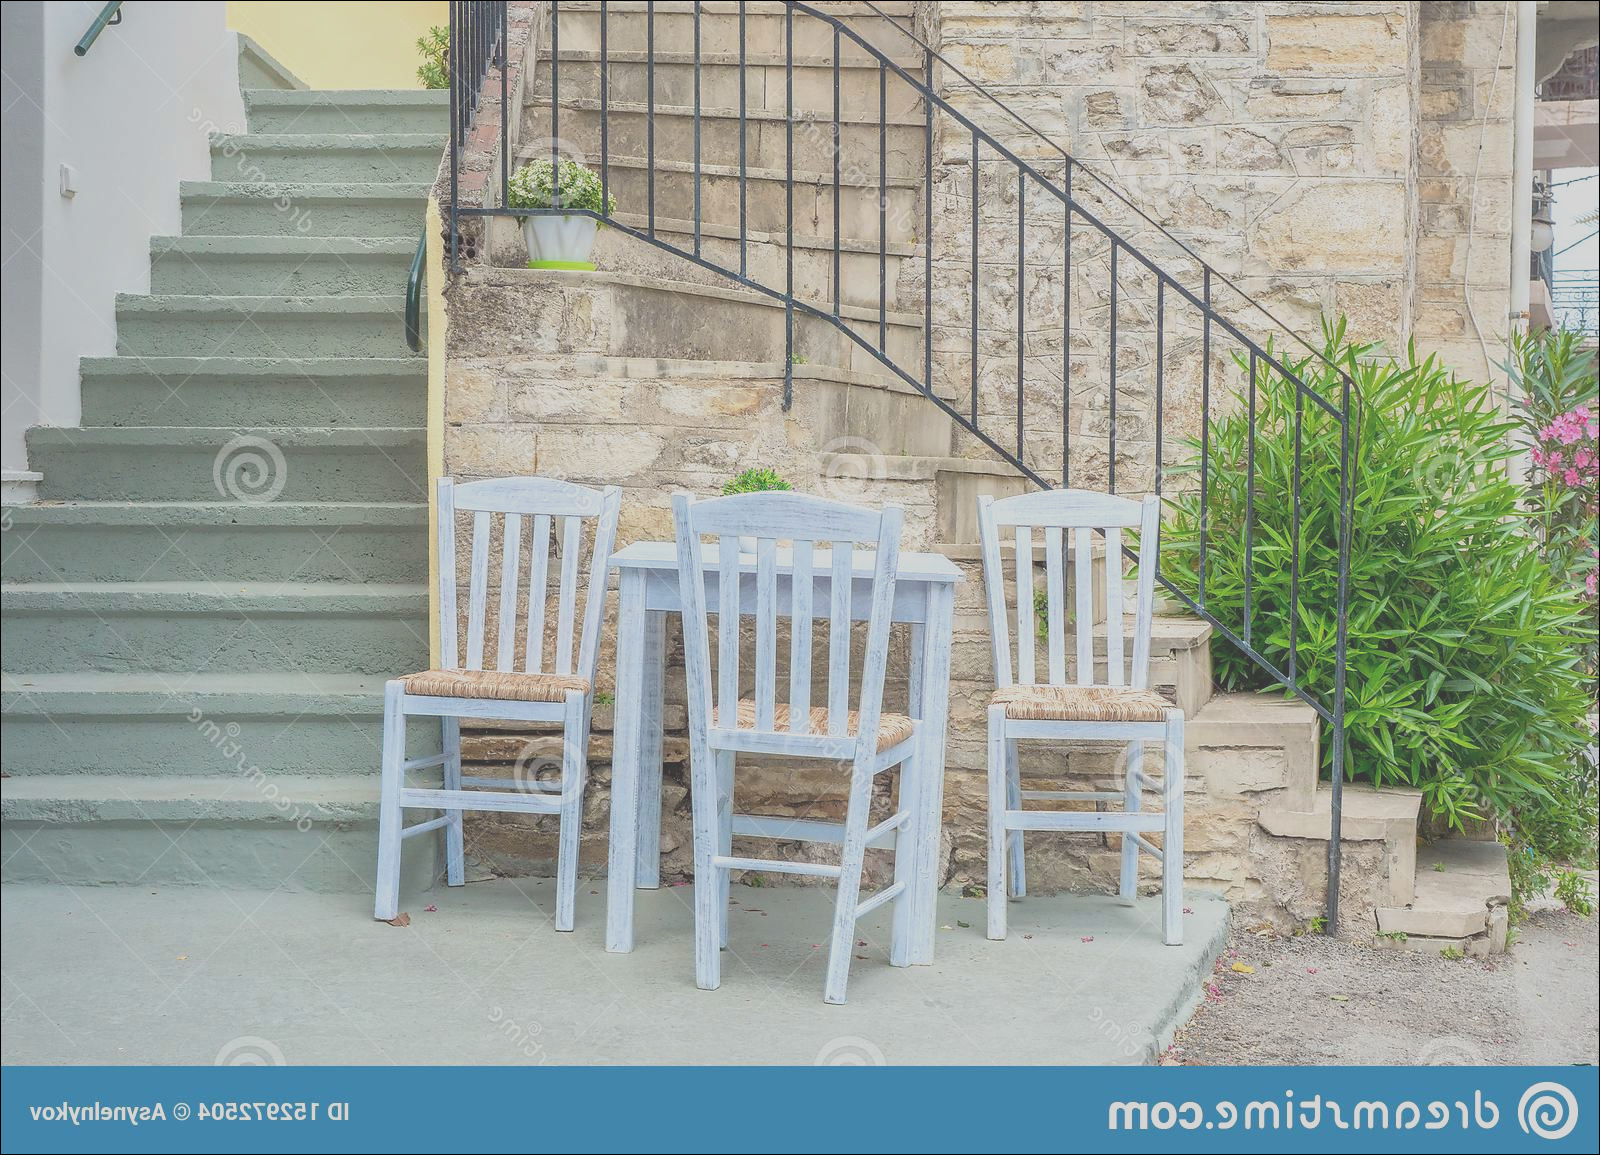 cafe exterior background countryard table chairs plant stairs fortable tavern restaurant traveling concept place image